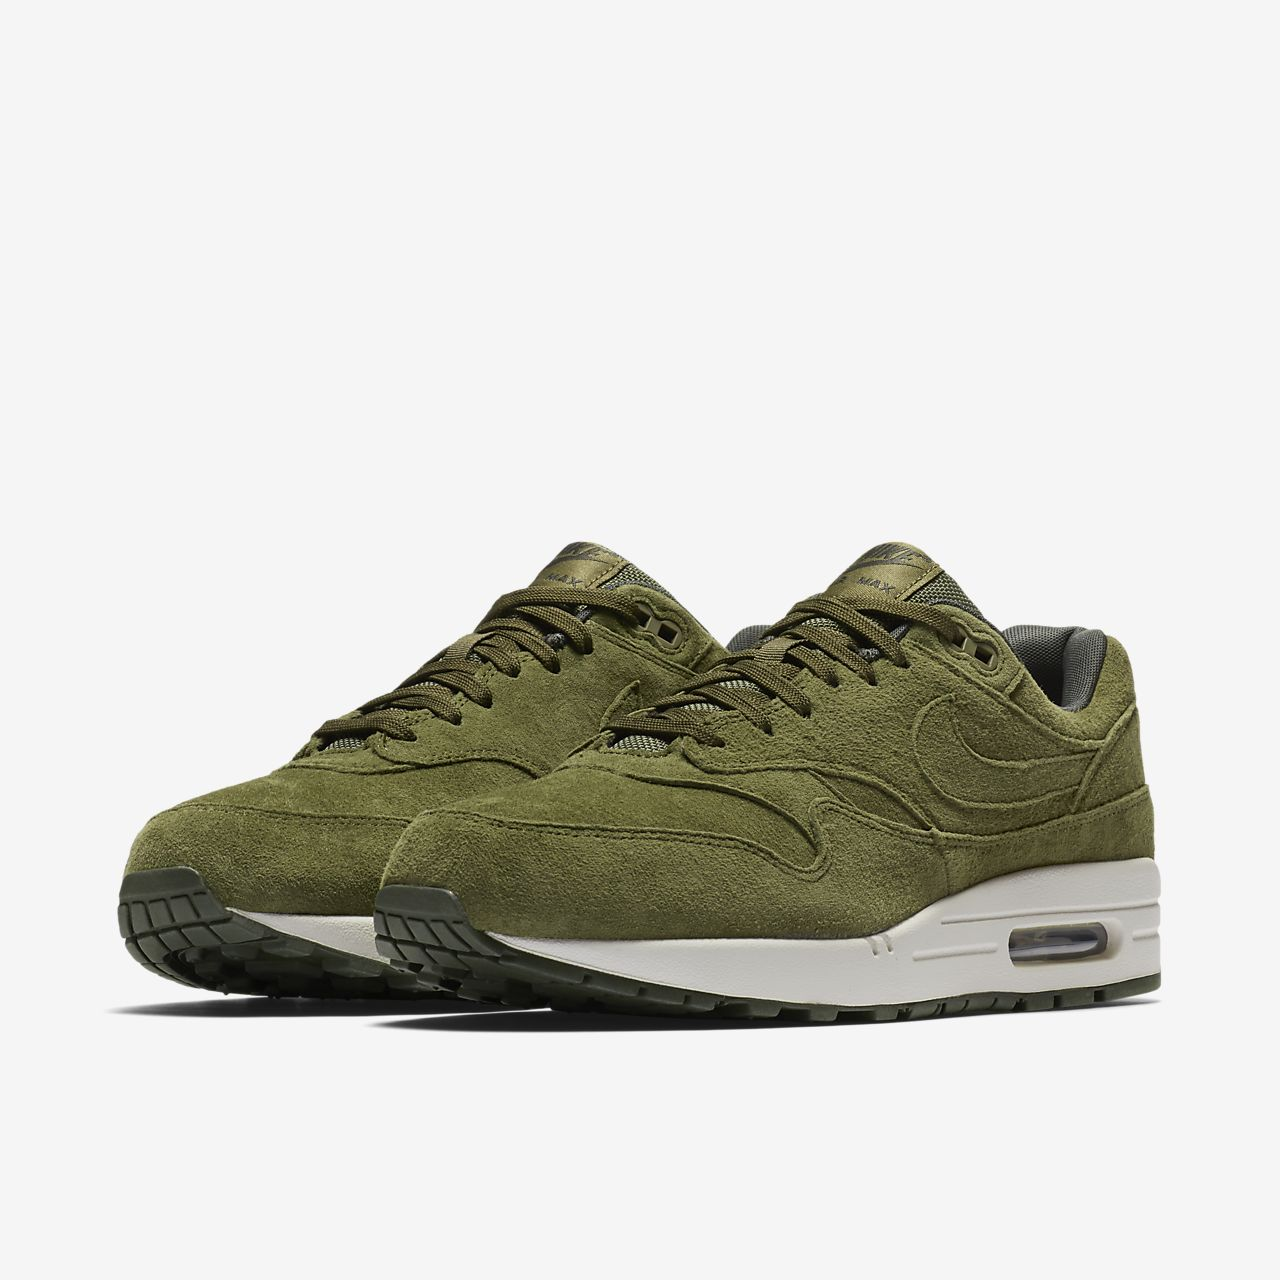 Nike Air Max 1 Premium Herrenschuh